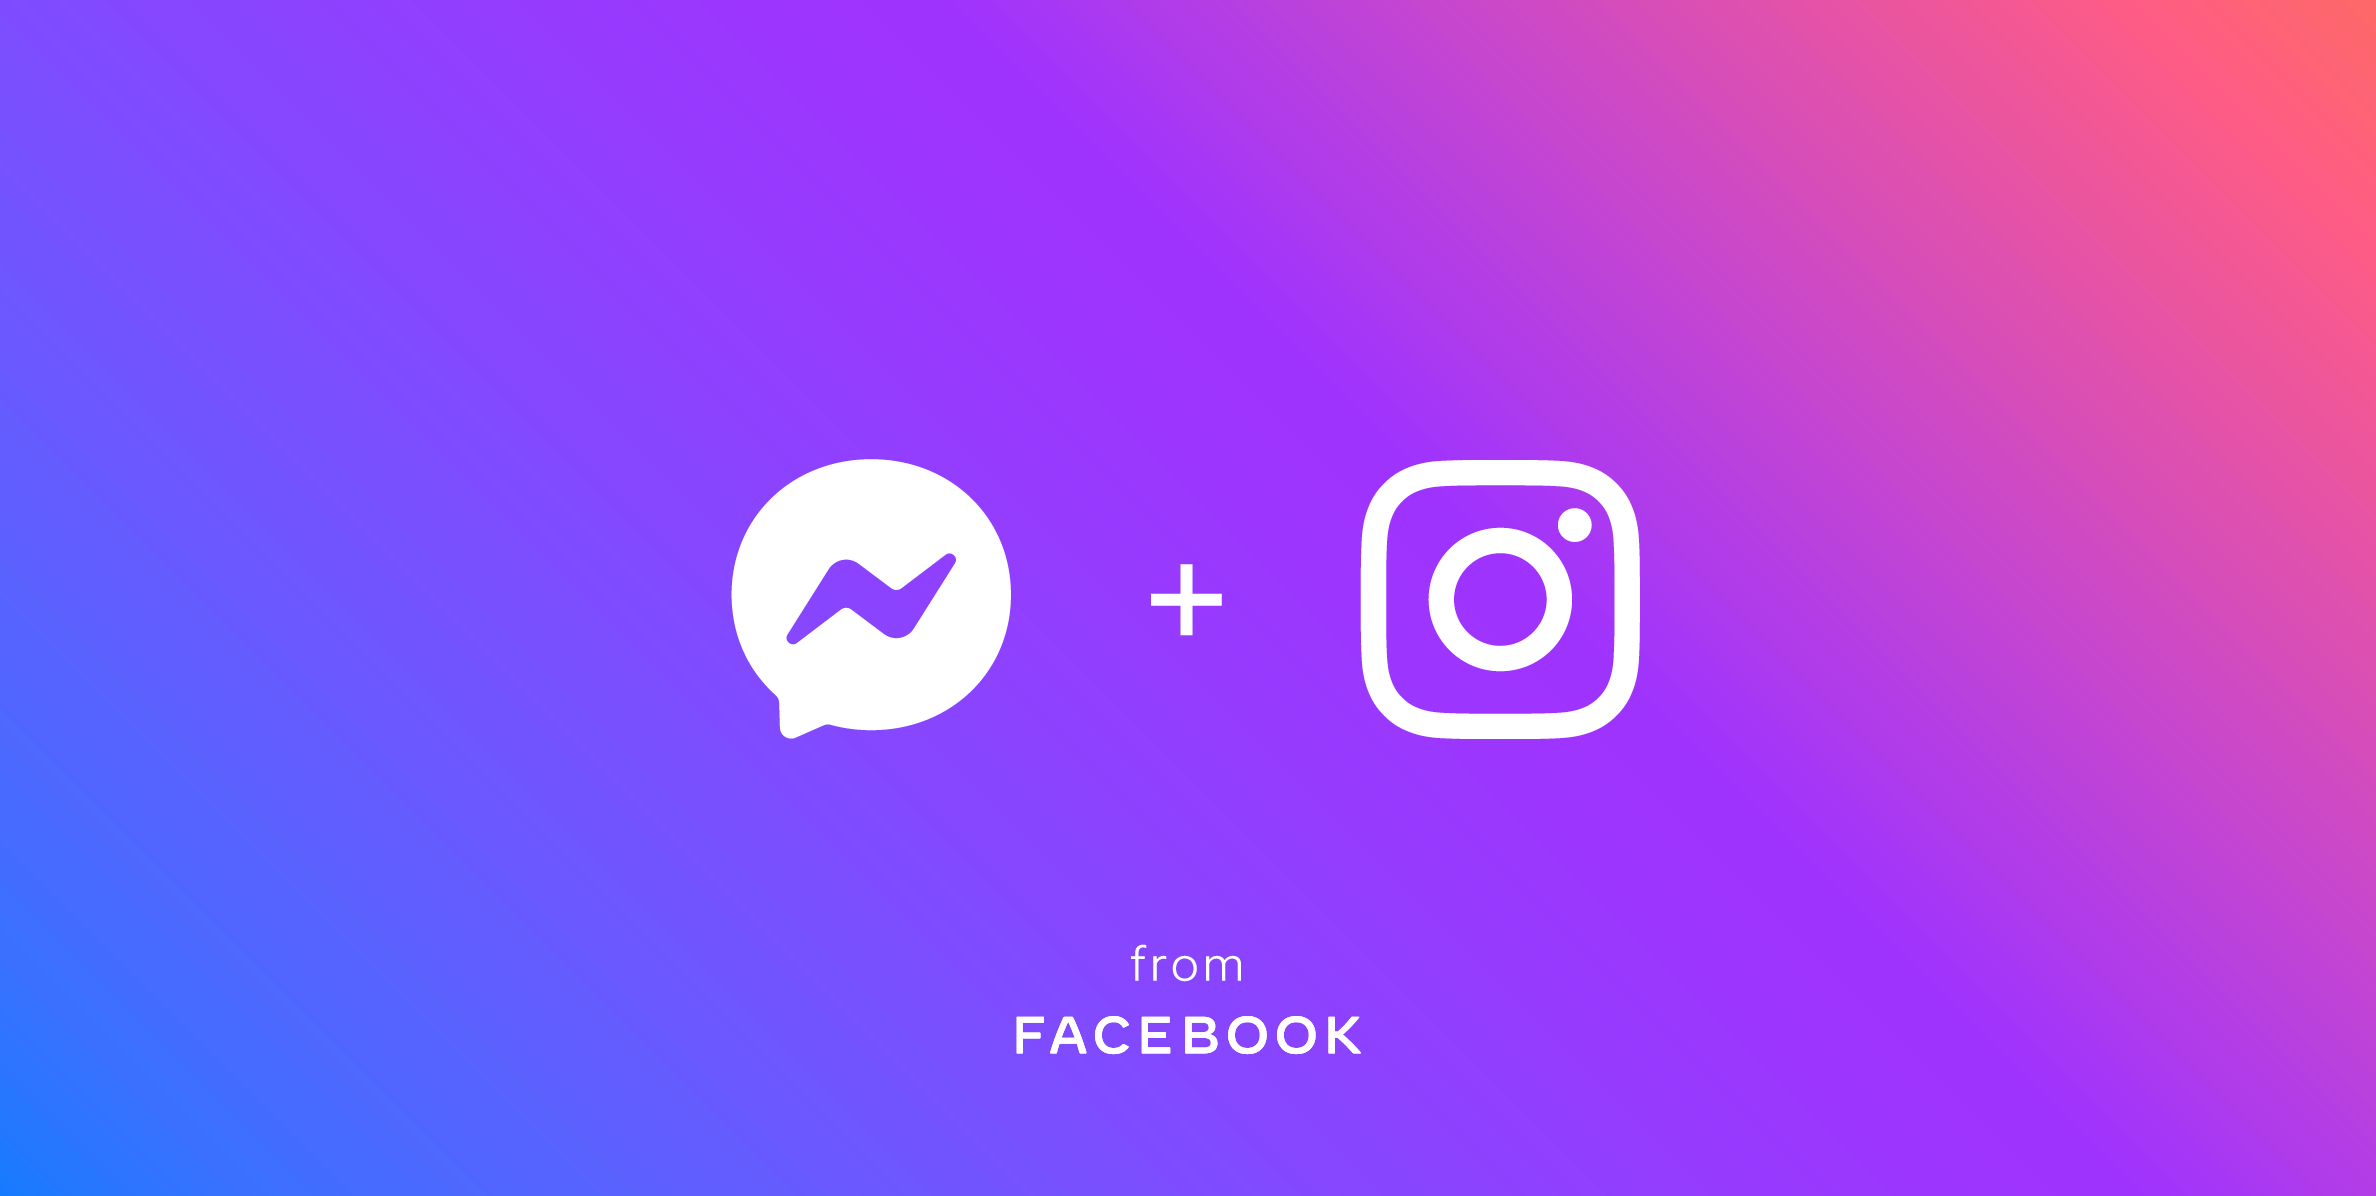 Good news: Facebook's Messenger API will support Instagram messaging